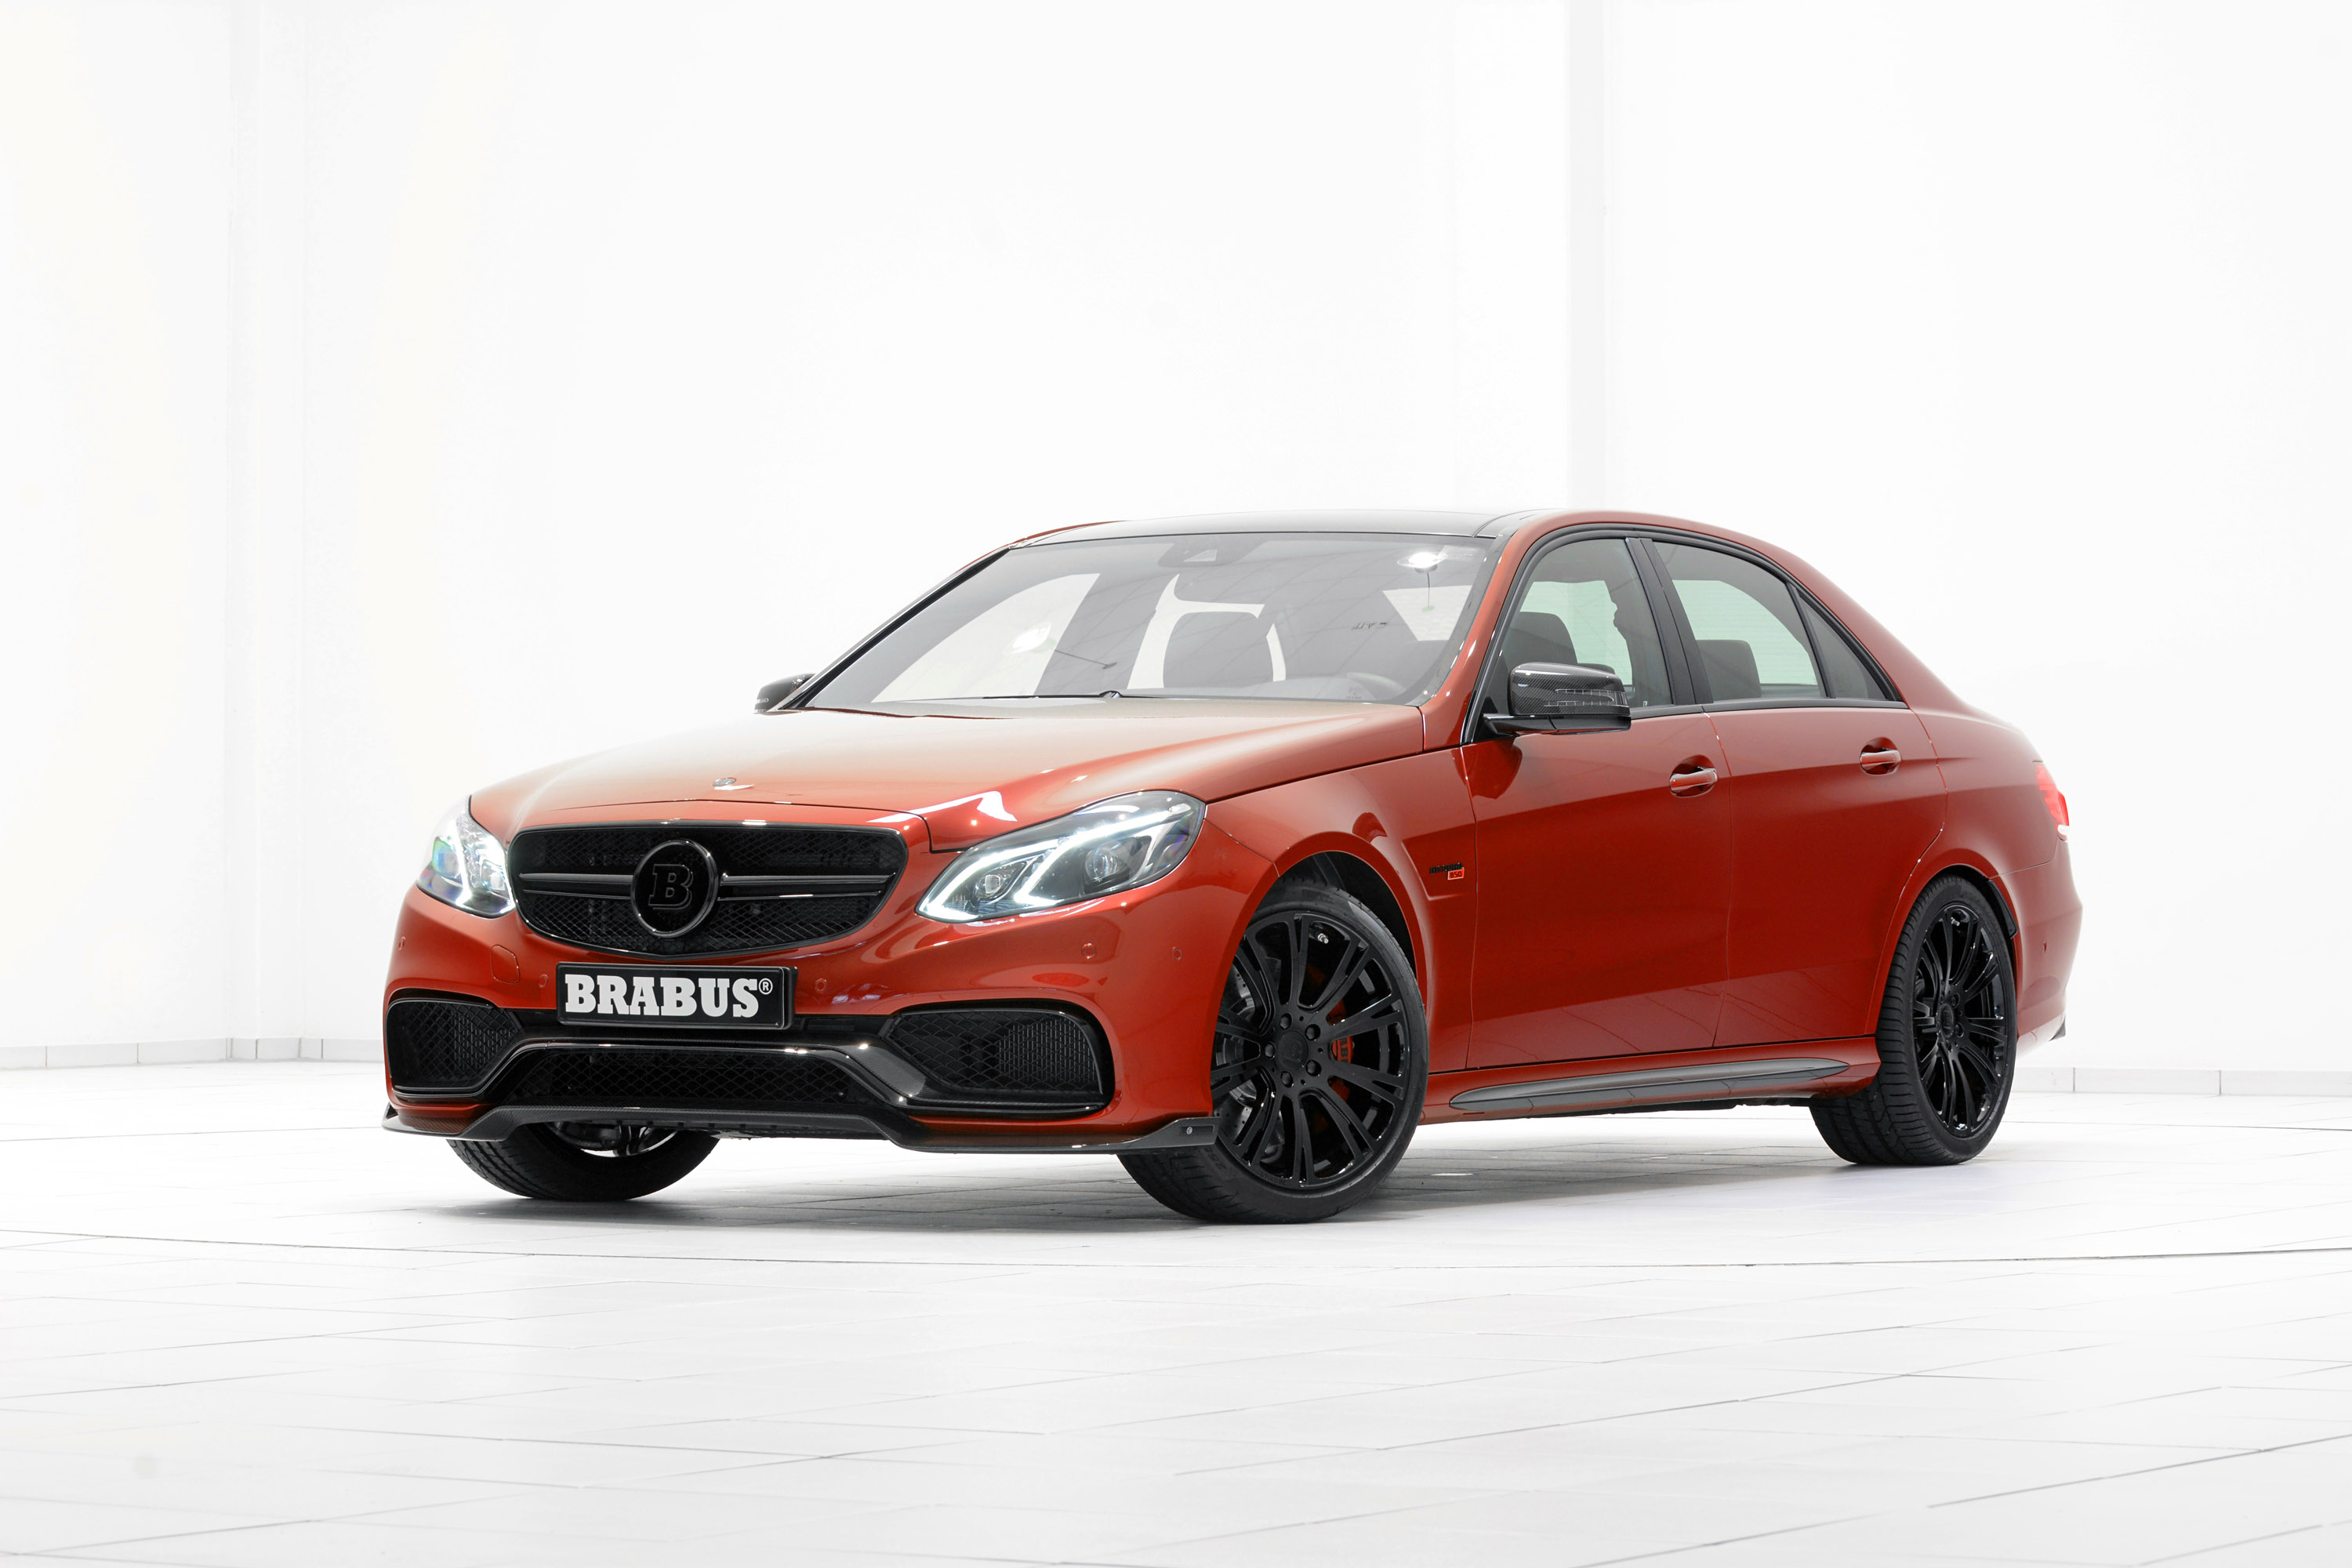 Brabus Mercedes-Benz E 63 850 Biturbo photo #1